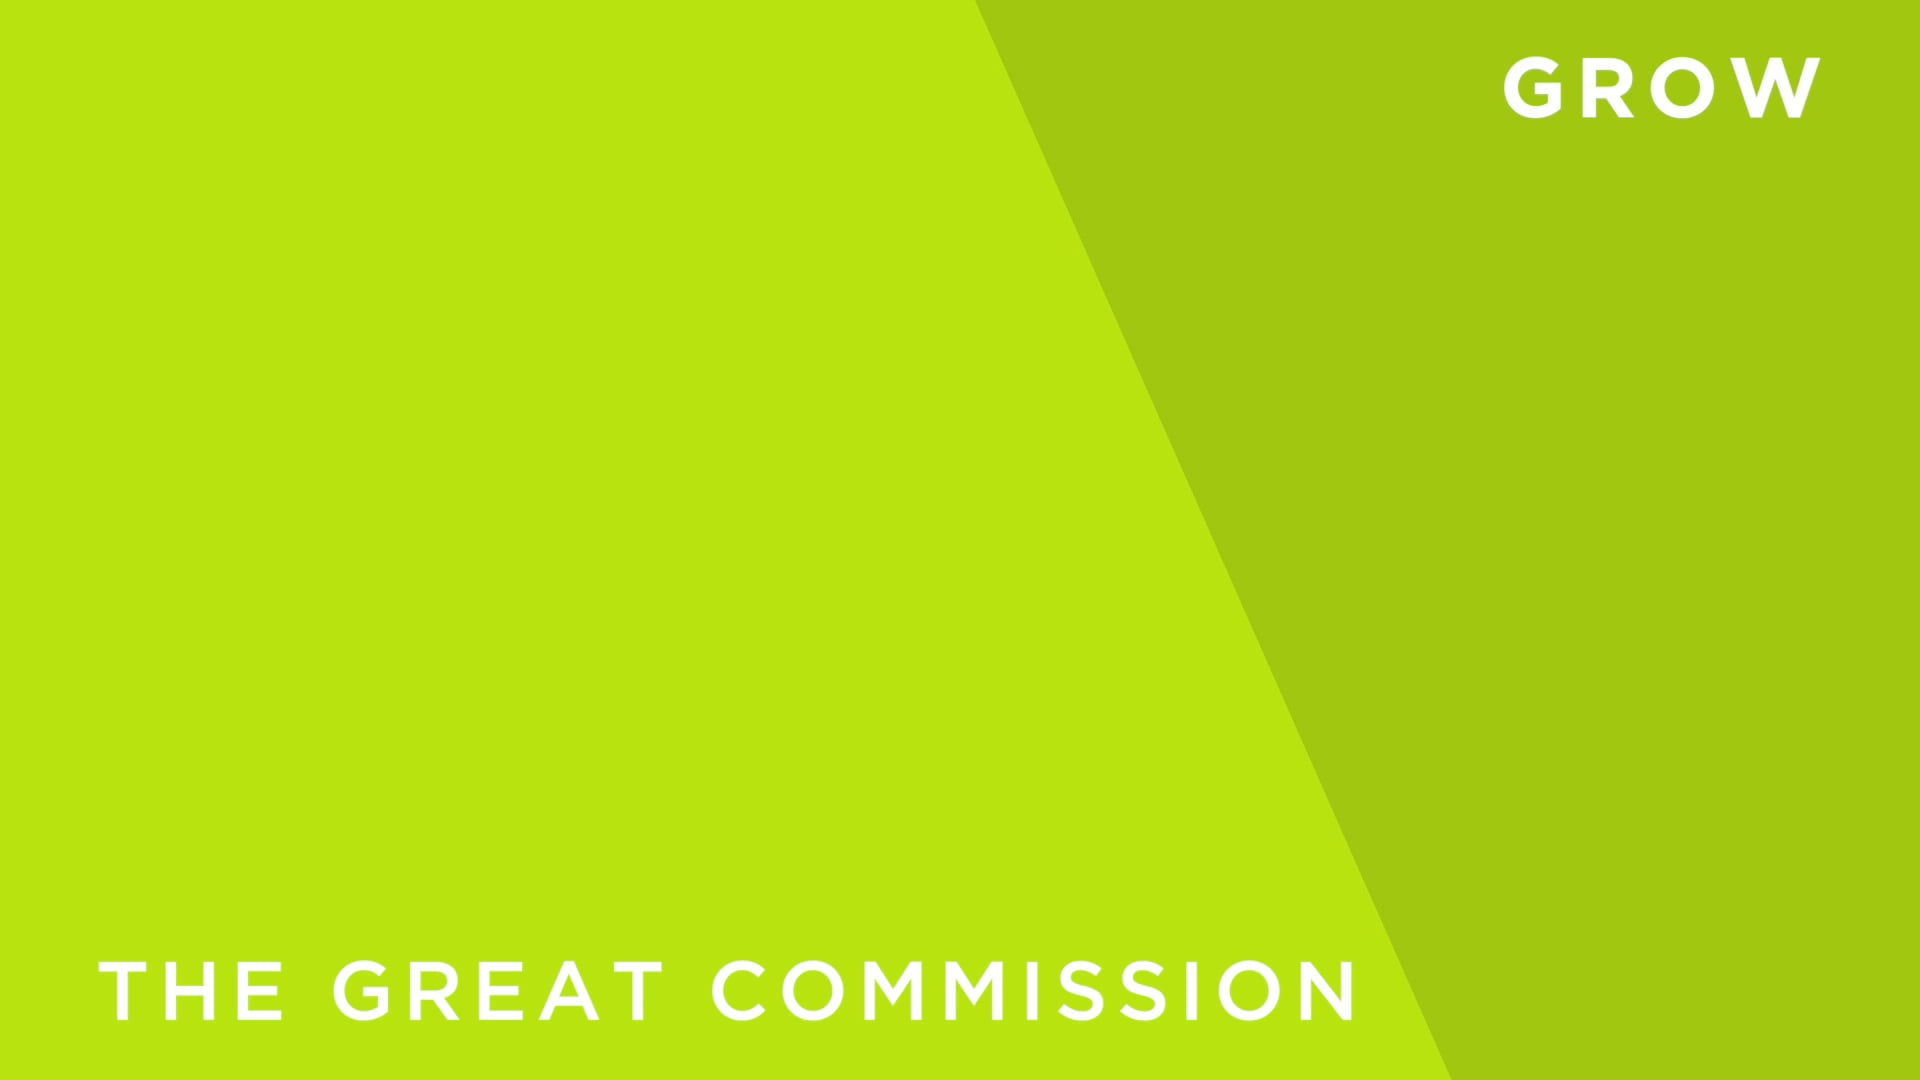 Our Purpose - The Great Commission